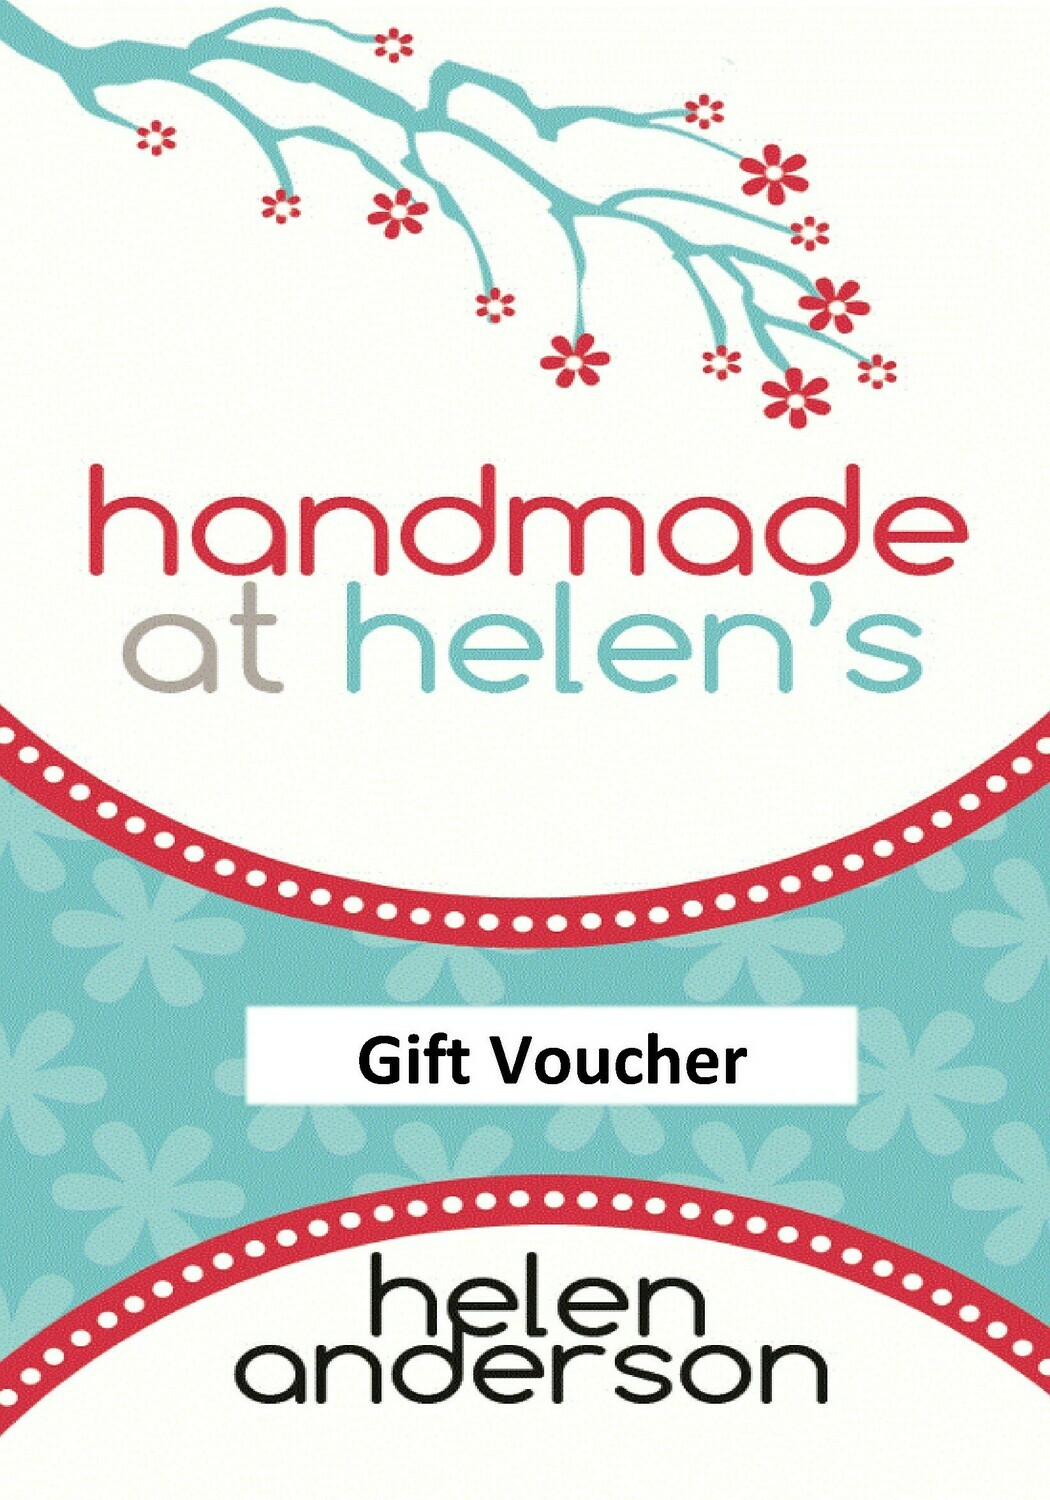 Gift card - £10, £25, £50, £75 or £100